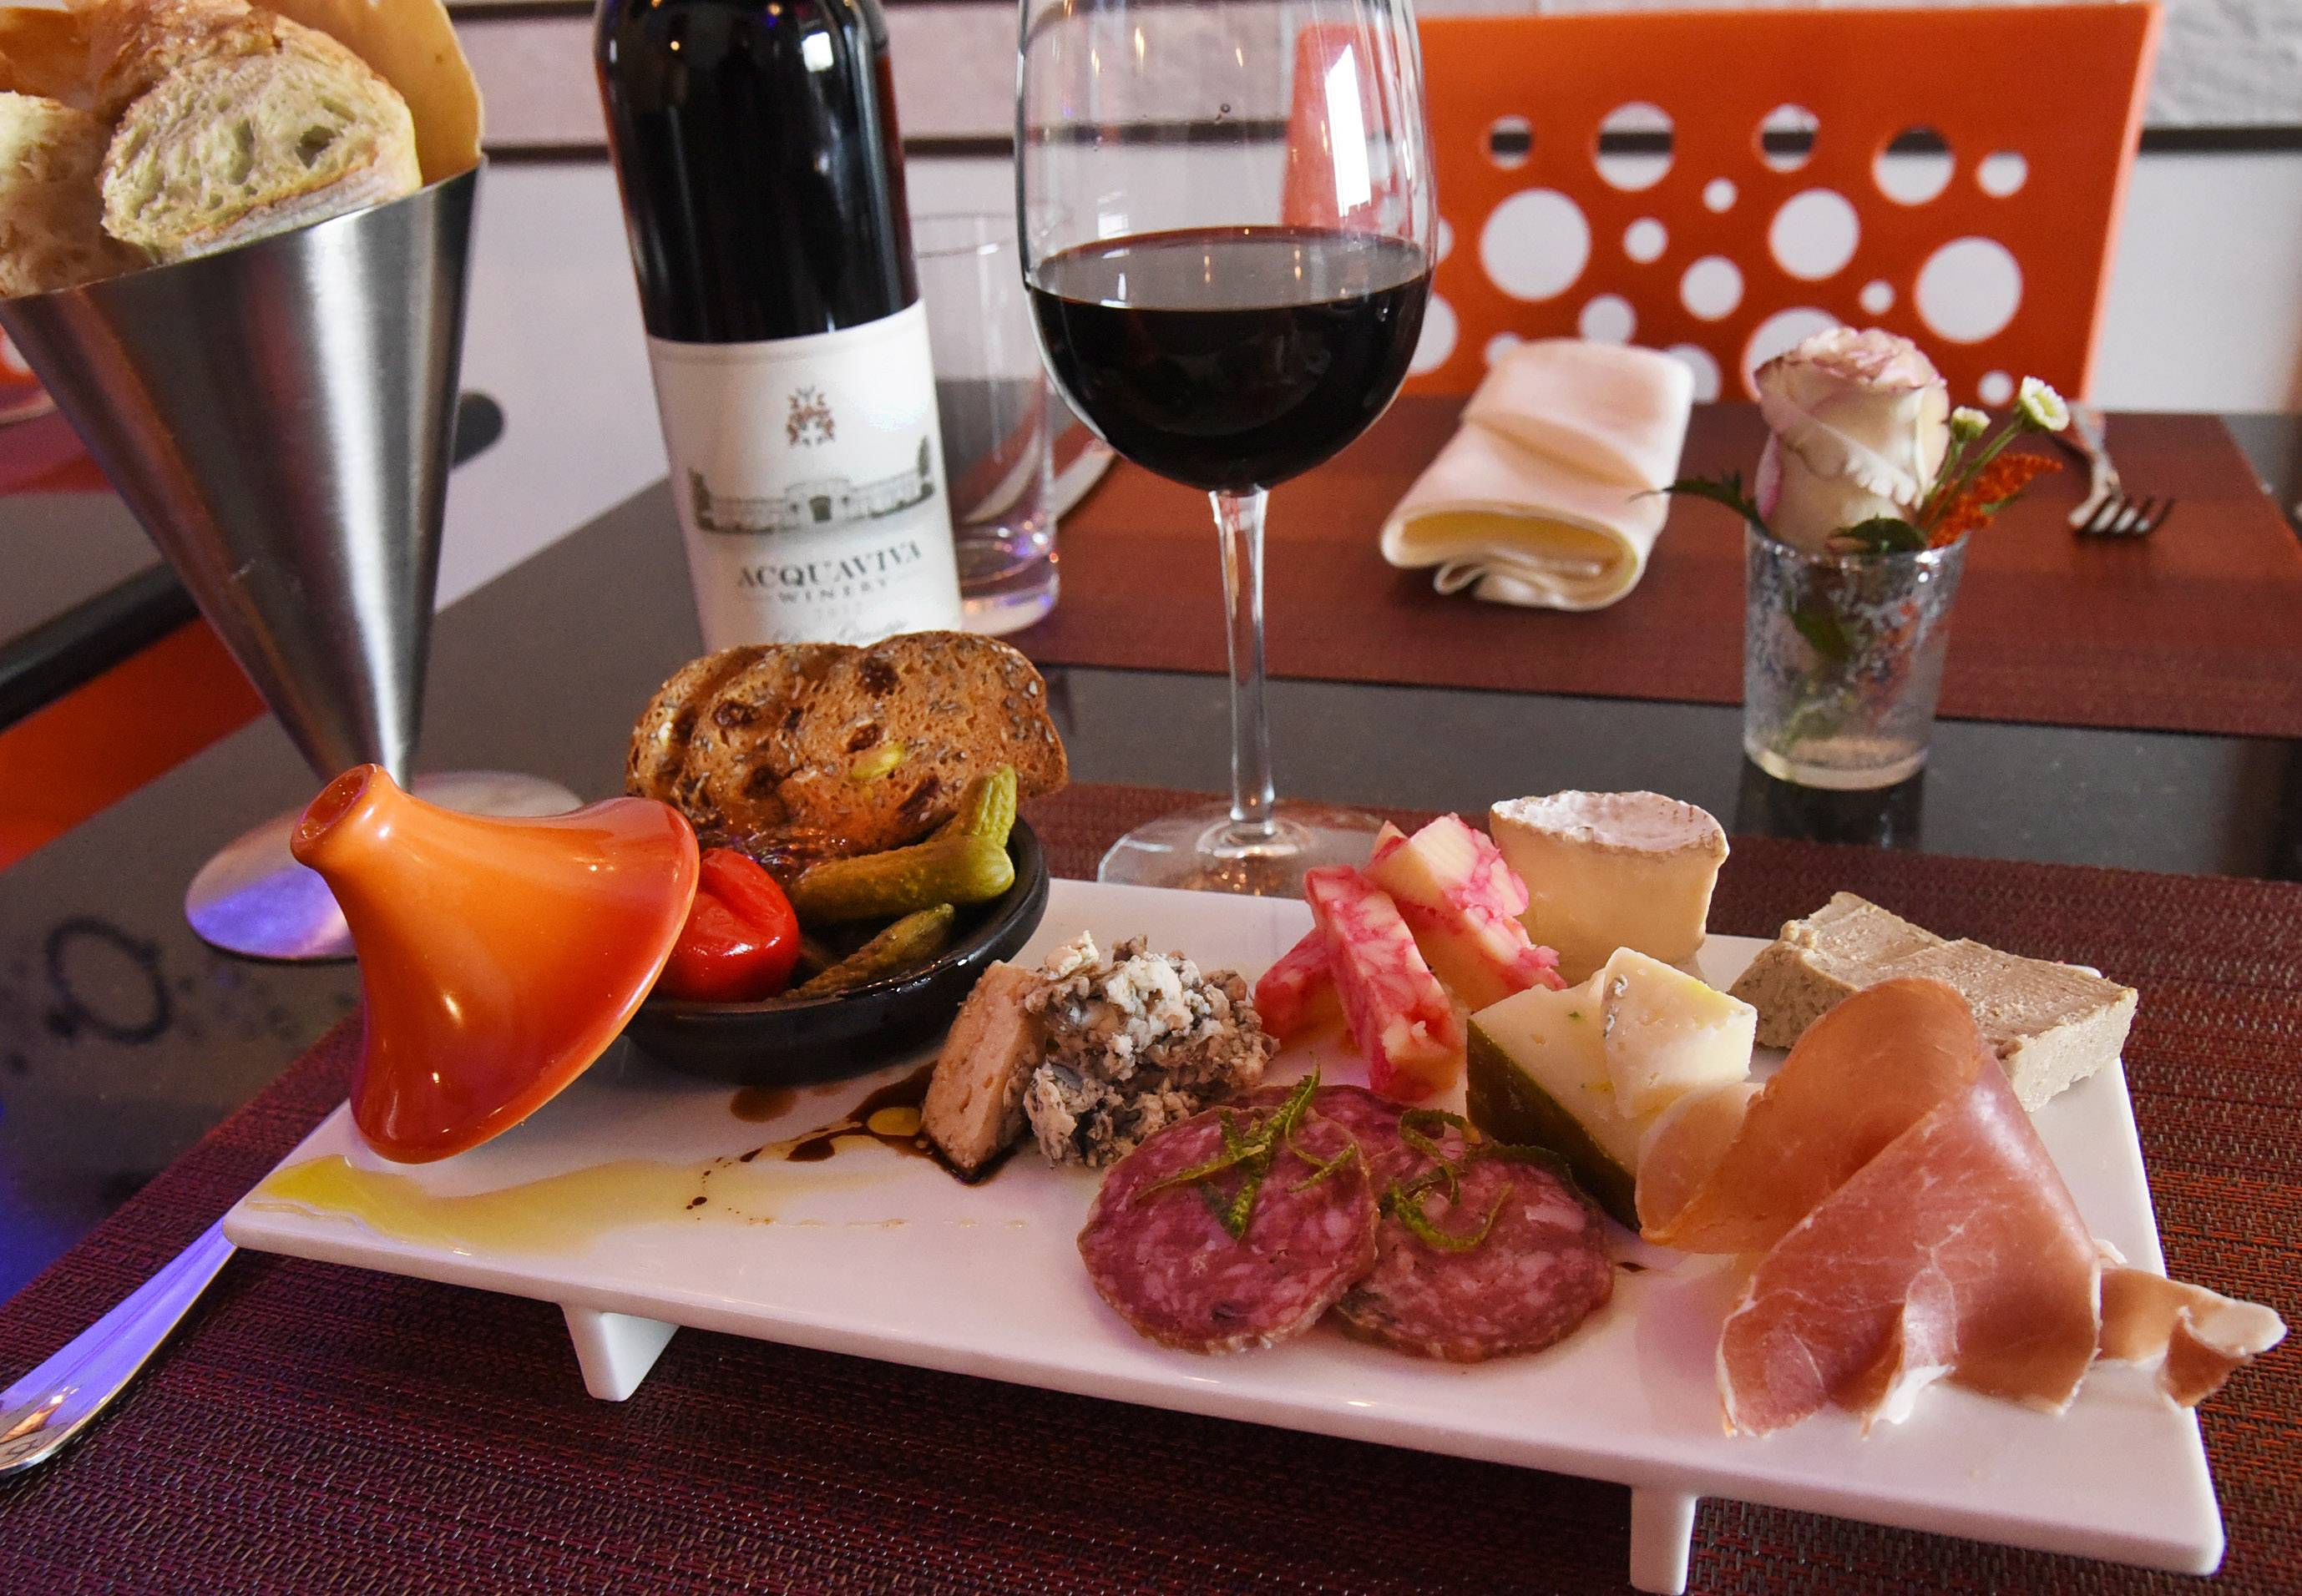 A cheese plate at Primo in Geneva might include a semi-firm cheese from Ludwig Farmstead, Bleu d'Auvergne and Gres Champenois. Add to that assorted charcuterie dishes, liver pate from France, bite-size cornichons and Aquaviva Pinot Noir and you have a meal.